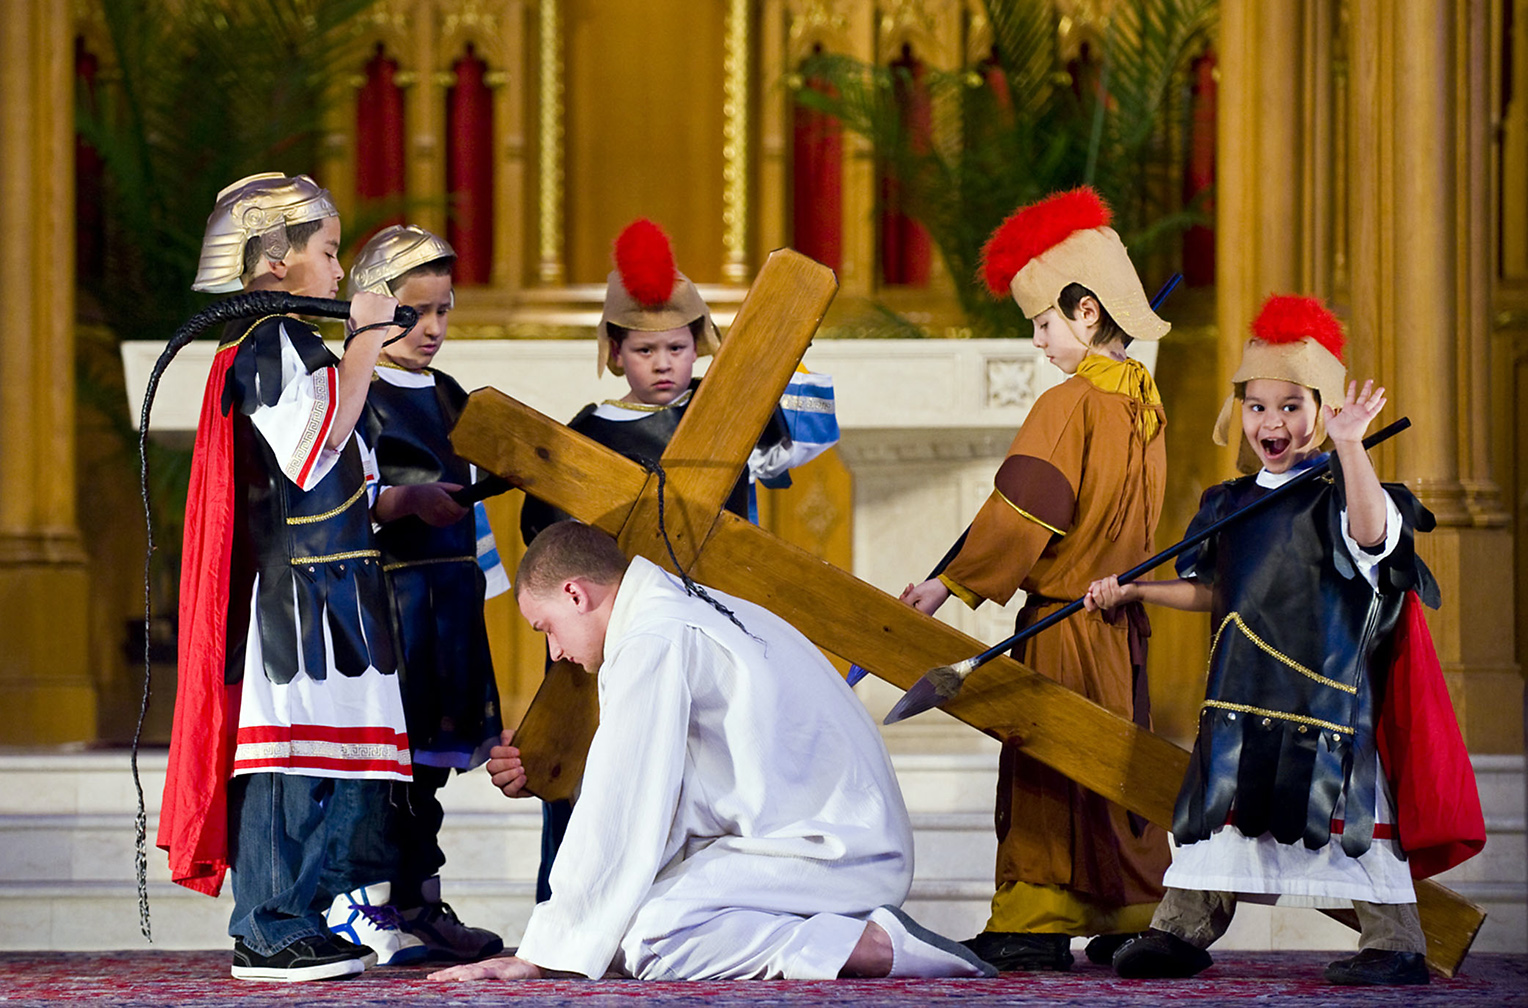 Students and teachers of St. Henry's Religious Education stage the Living Stations of the Cross–a series of tableaux depicting the last hours of Jesus Christ–at St. Henry's Roman Catholic Church in observance of the Christian holy day, Good Friday. Here, the Ninth Station: Jesus Christ (Jack Santopietro) falls for a third time. At right, Ezekiel Lupianez, 4, dressed as a Roman soldier, breaks character, when upon seeing his mother, Maria Lupianez, in the audience taking his picture, he breaks into a smile and waves for the camera. (Reena Rose Sibayan | The Jersey Journal)